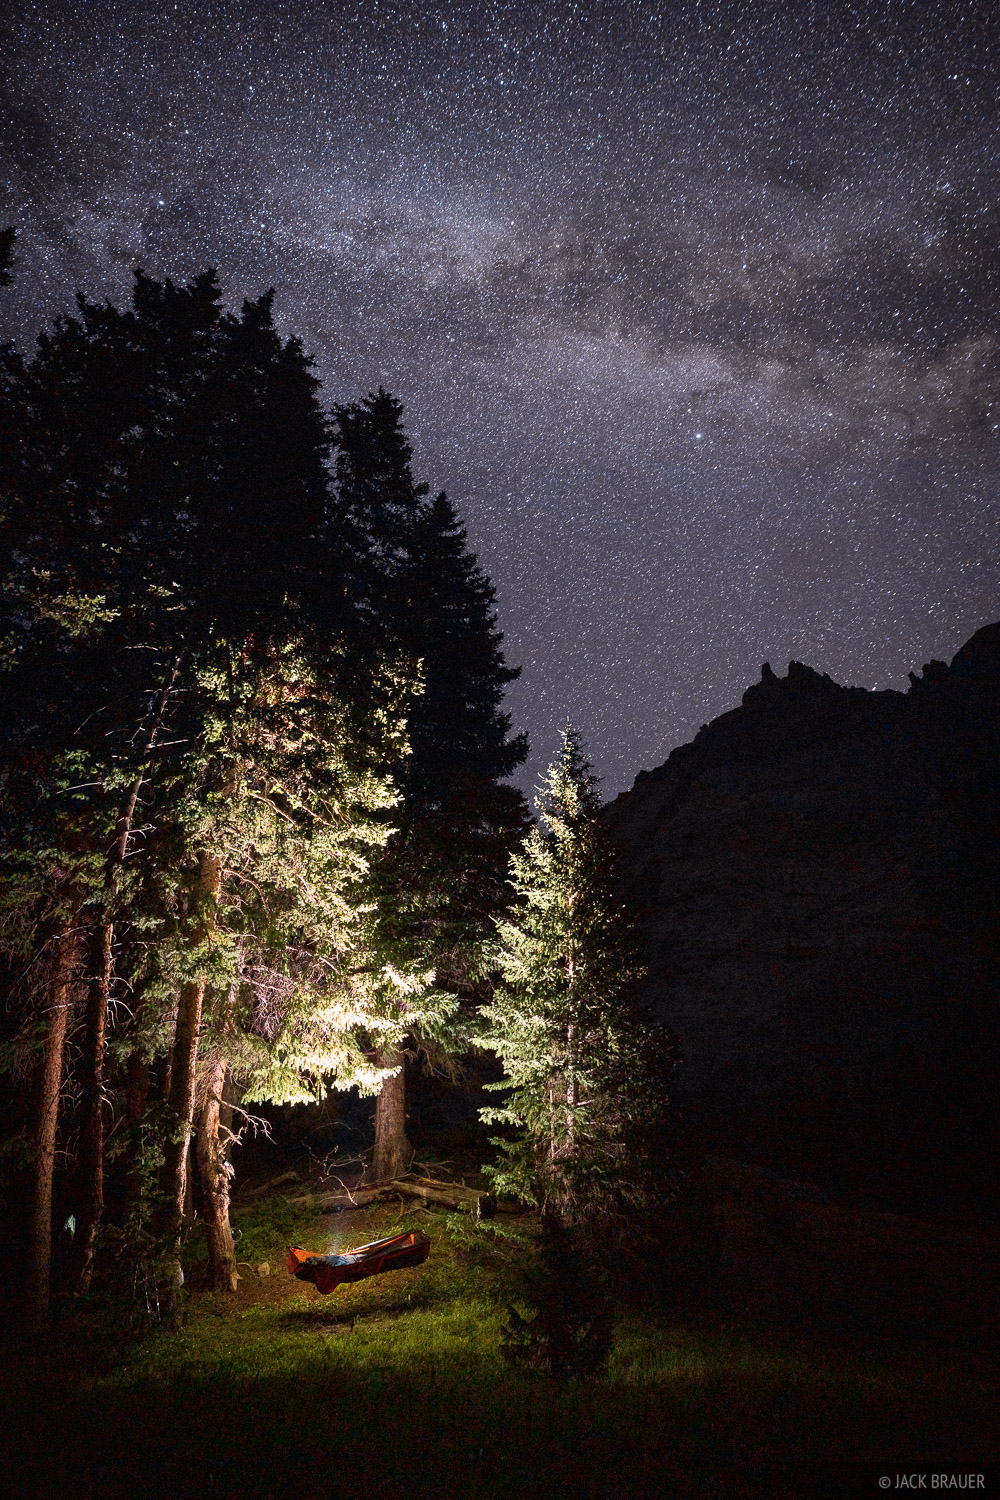 Colorado, Ouray, San Juan Mountains, hammock, stars, camping, photo